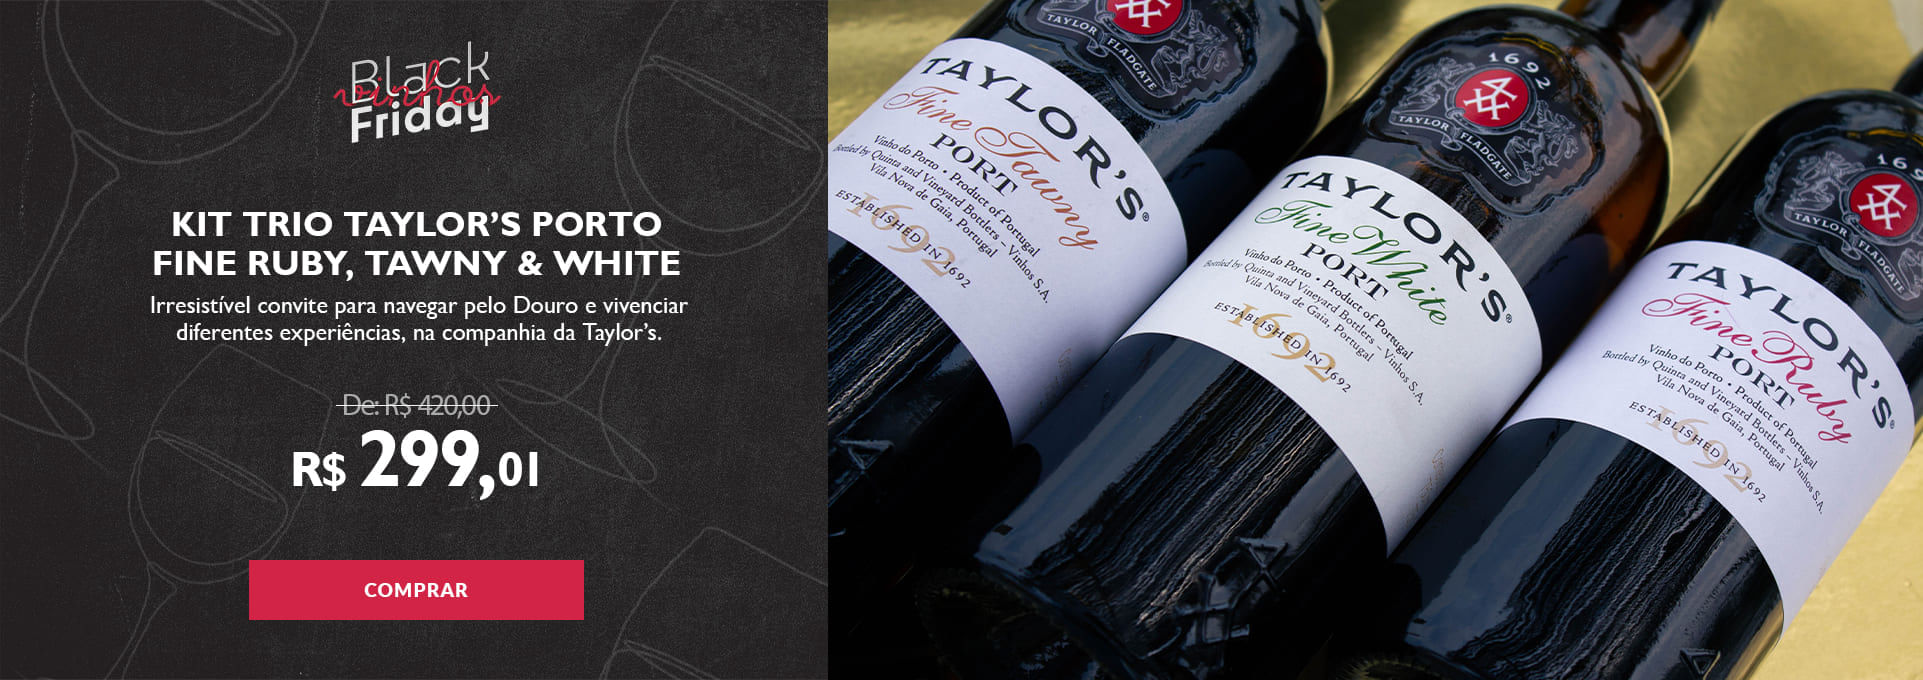 Black Friday 2020 - Kit Trio Taylors Porto